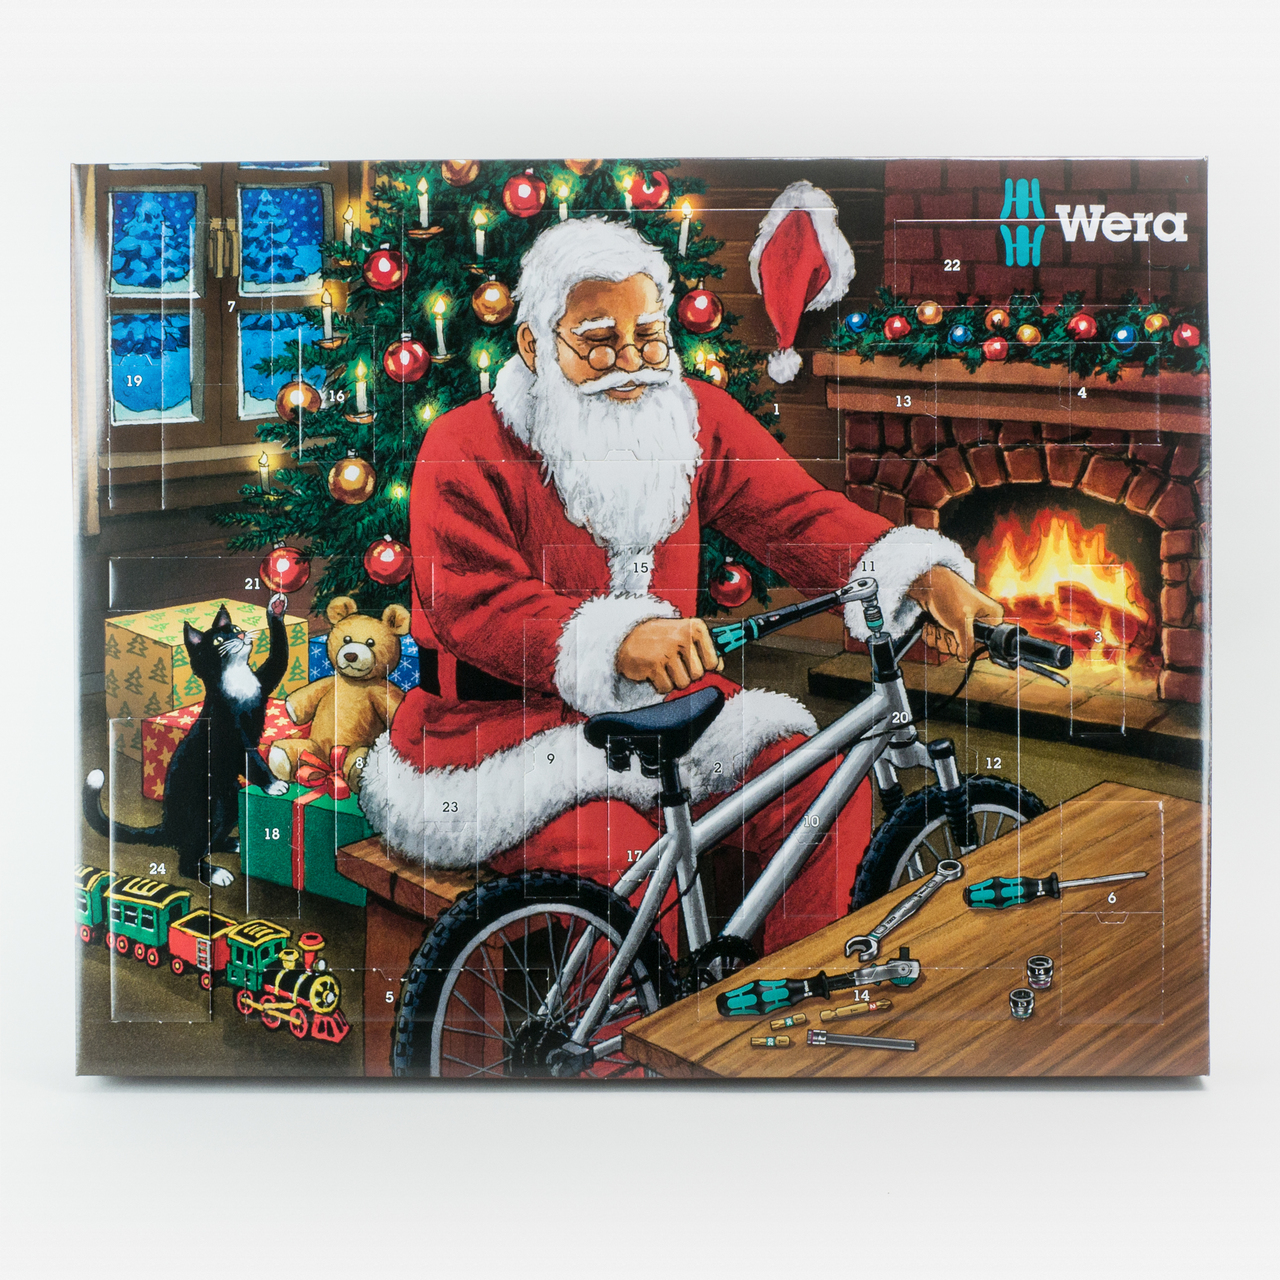 Wera Advent Calendar 2018 - KC Tool